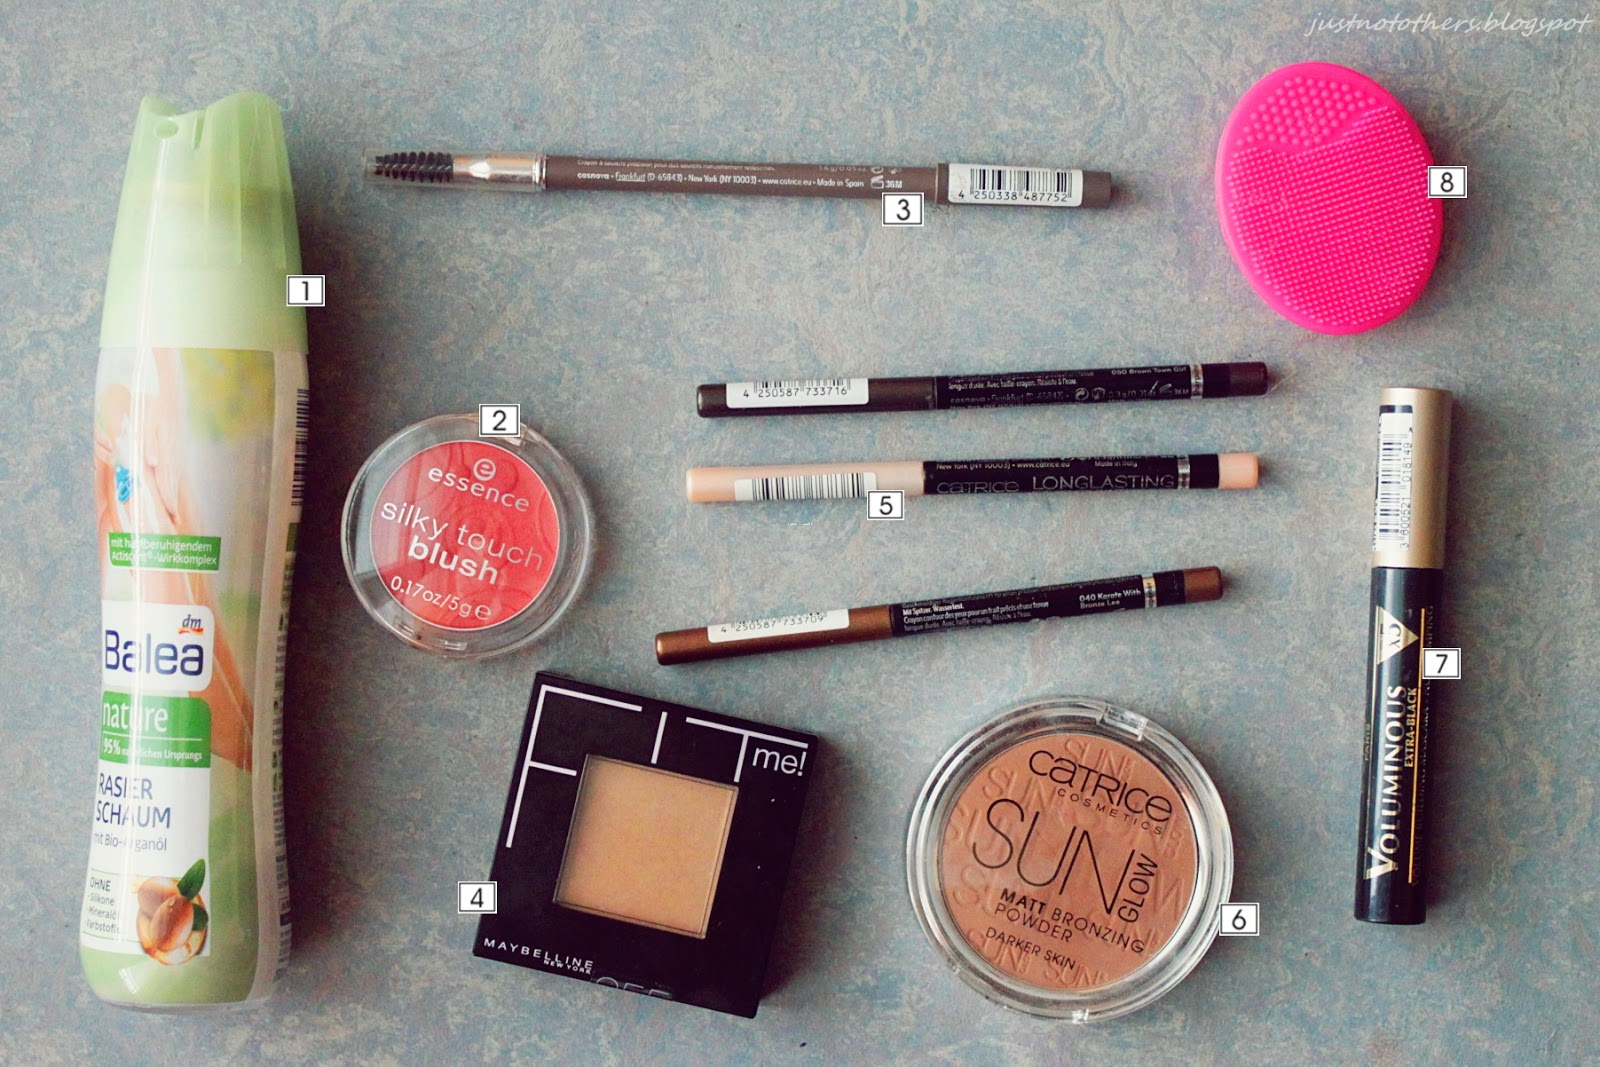 Balea Rasierschaum, Essence Silk Touch Blush, Fit Me Powder, Catrice Sun Glow, Catrice Longlasting Eye Pencile, Voluminous x5 Mascara, Ebelin Reiniger